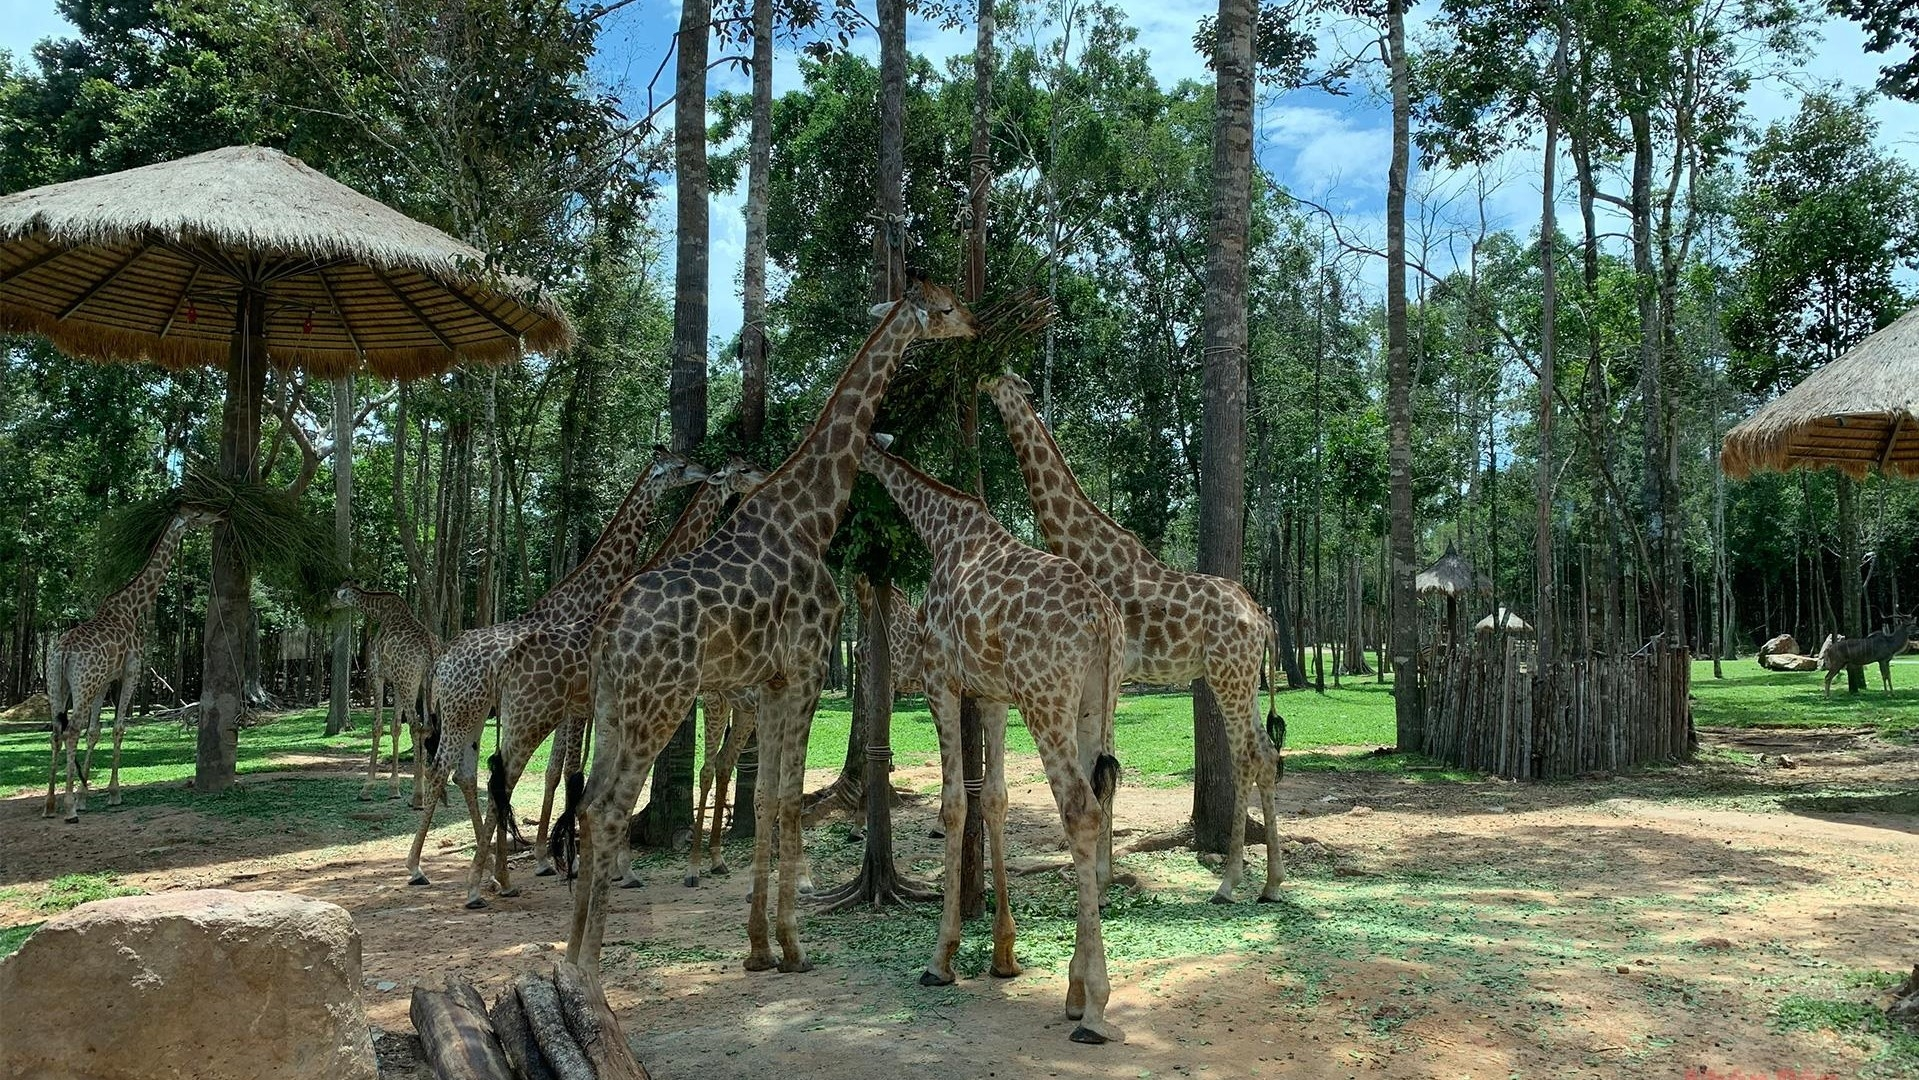 Great experiences in wildlife park on Phu Quoc Island